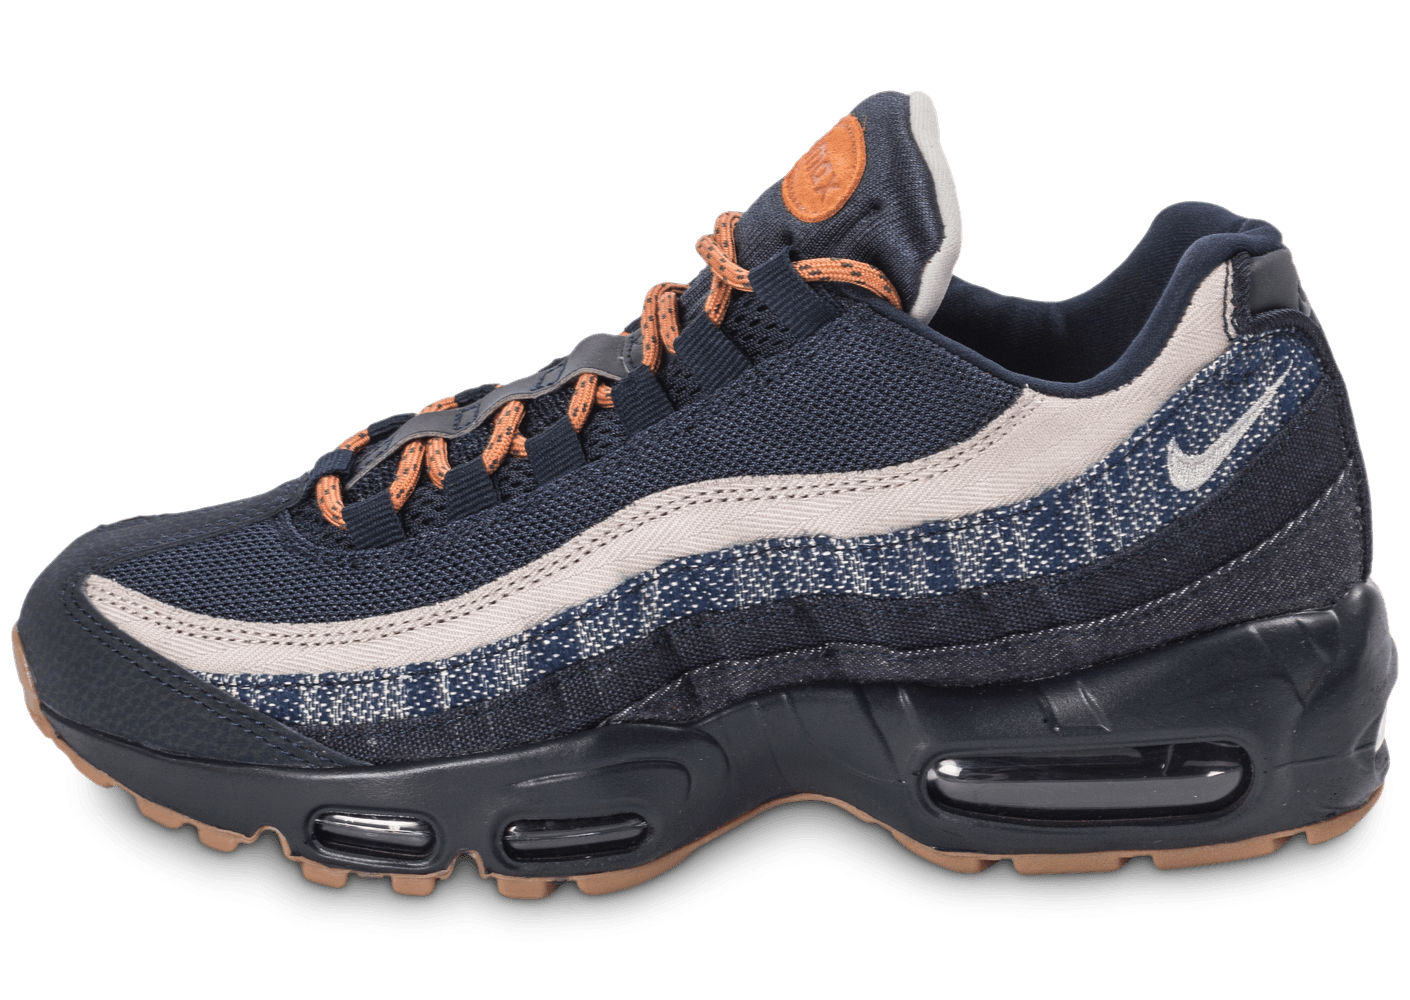 nike air max 95 premium denim chaussures homme chausport. Black Bedroom Furniture Sets. Home Design Ideas